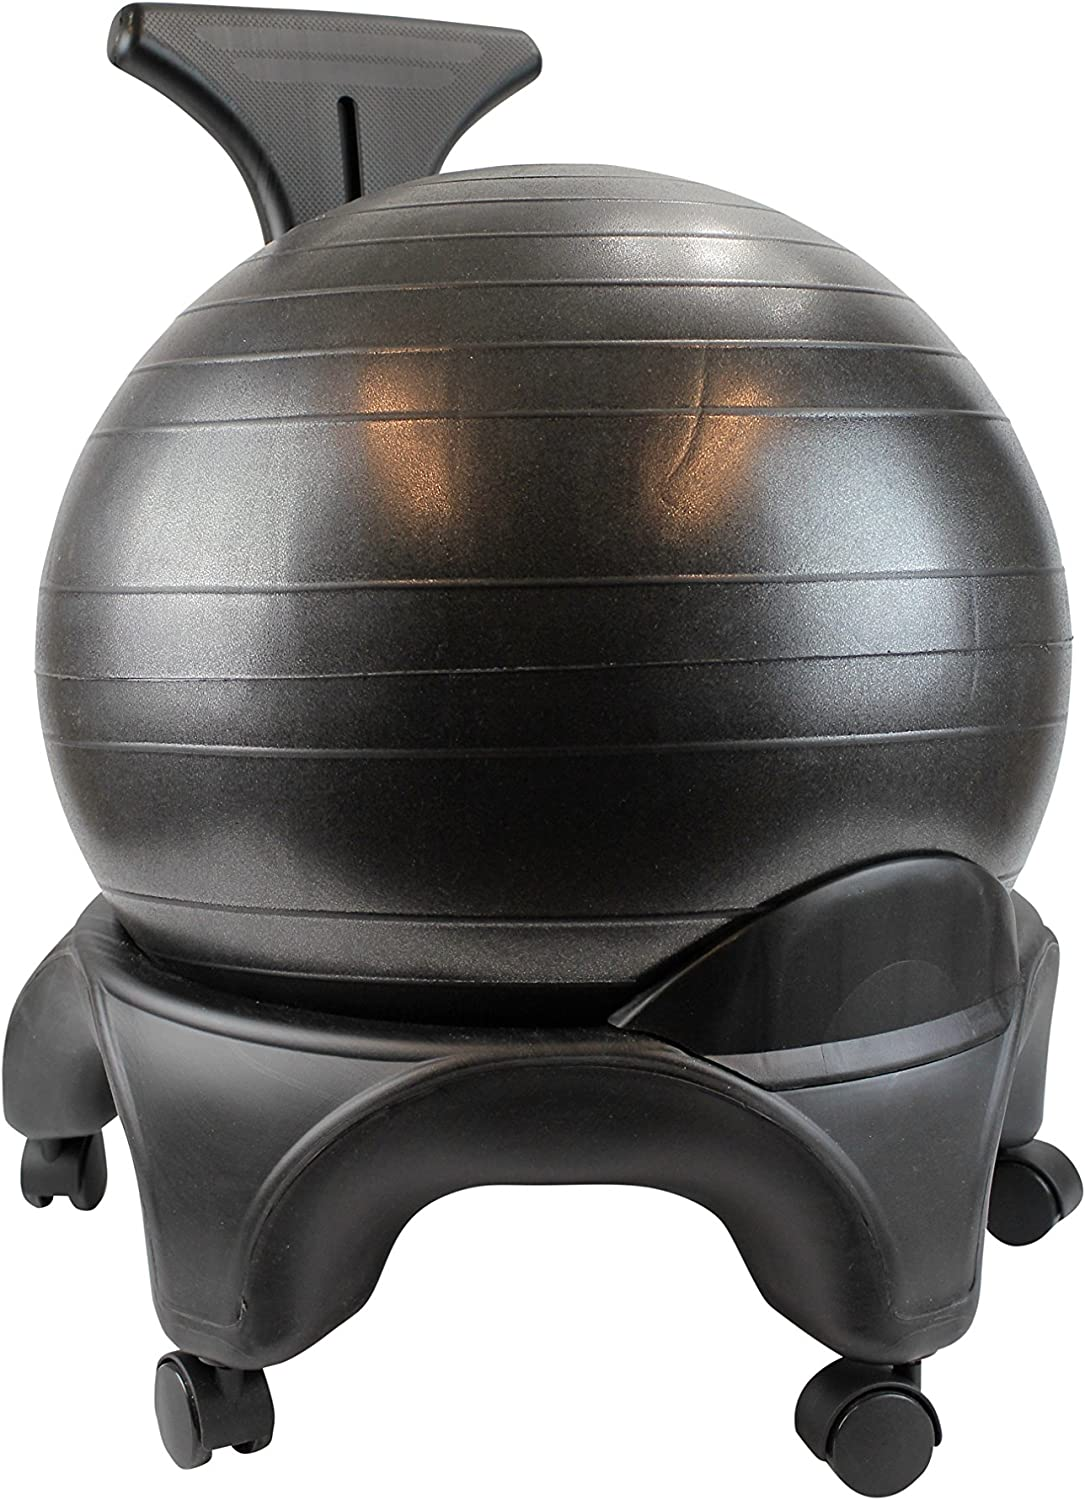 Ball Chair de POWRX